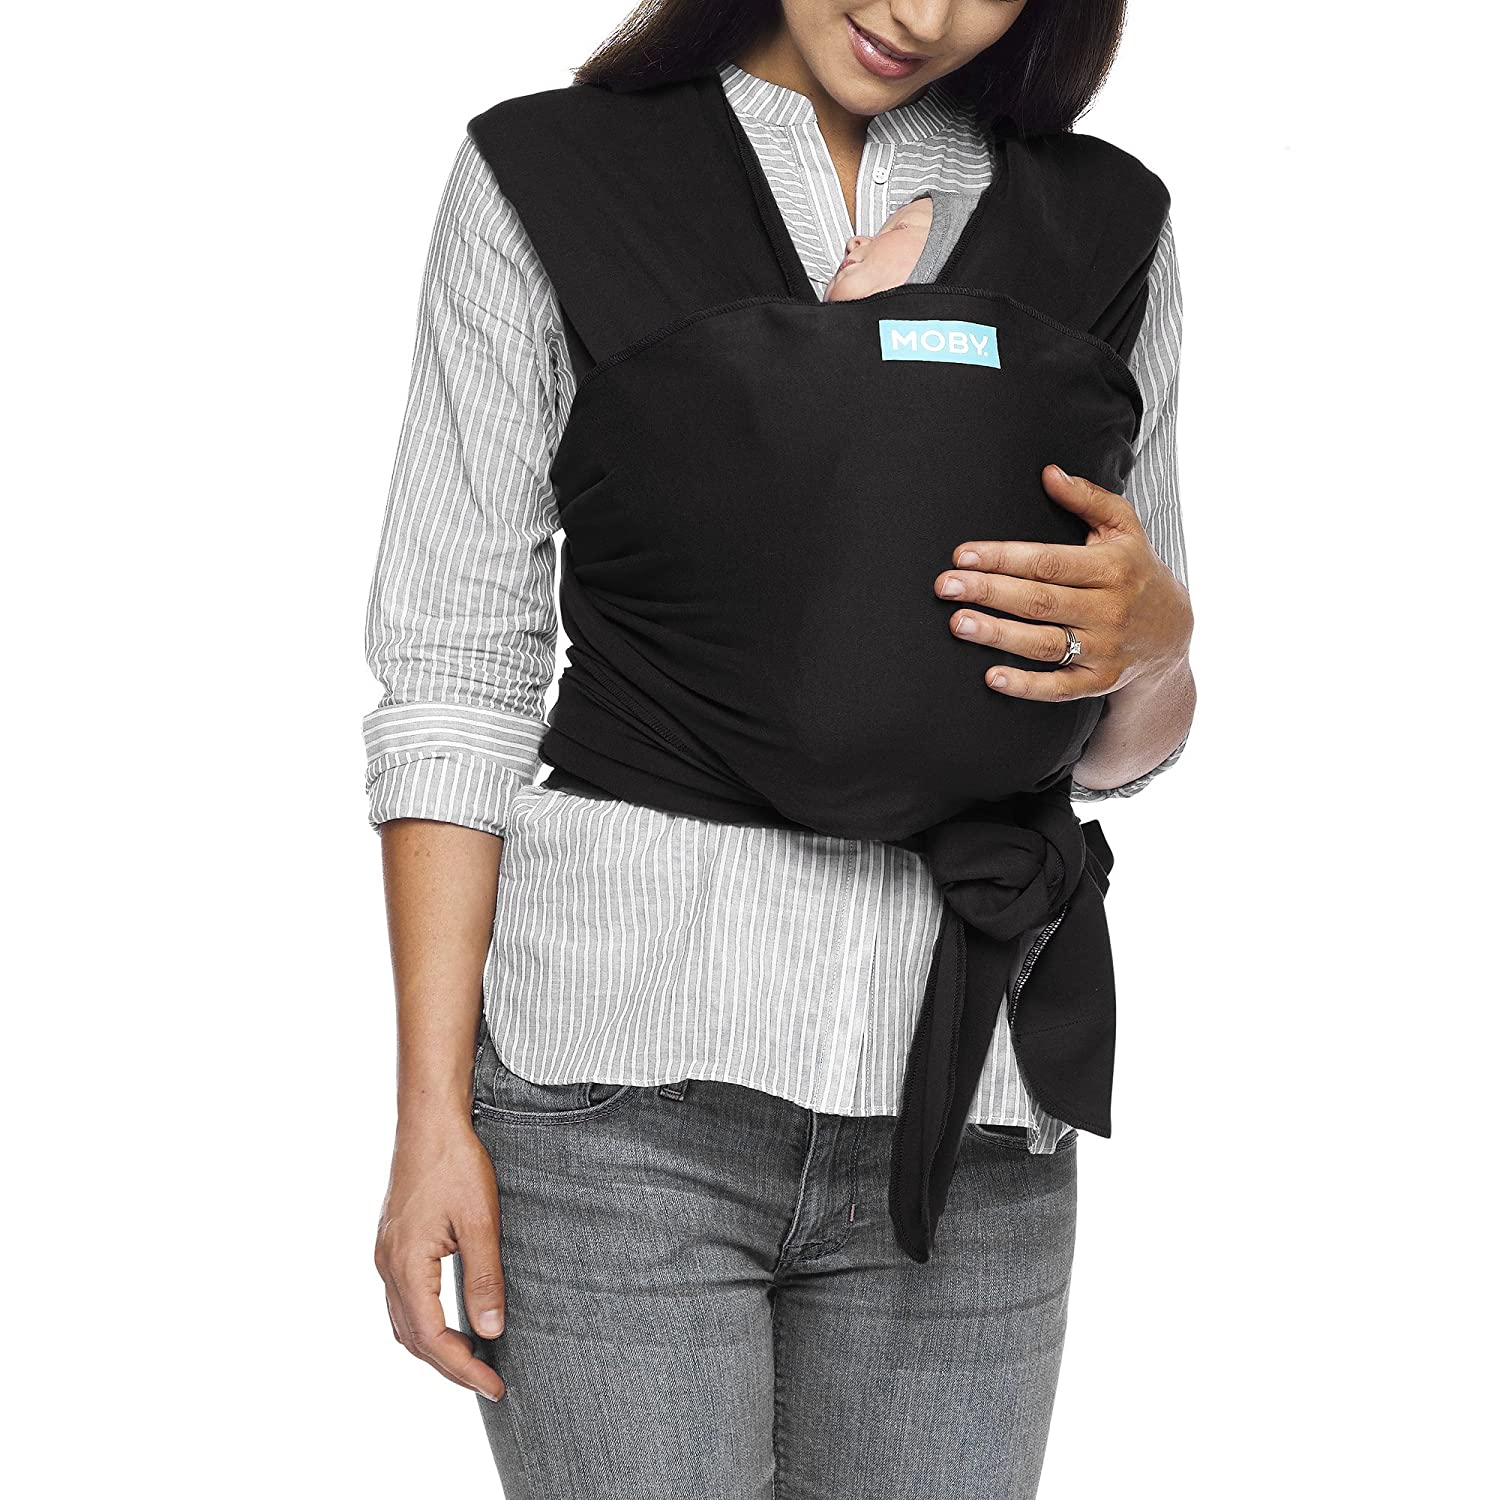 02f9978def2 Amazon.com   Moby Classic Baby Wrap (Black) - Baby Wearing Wrap for Parents  On The Go - Baby Wrap Carrier for Newborns